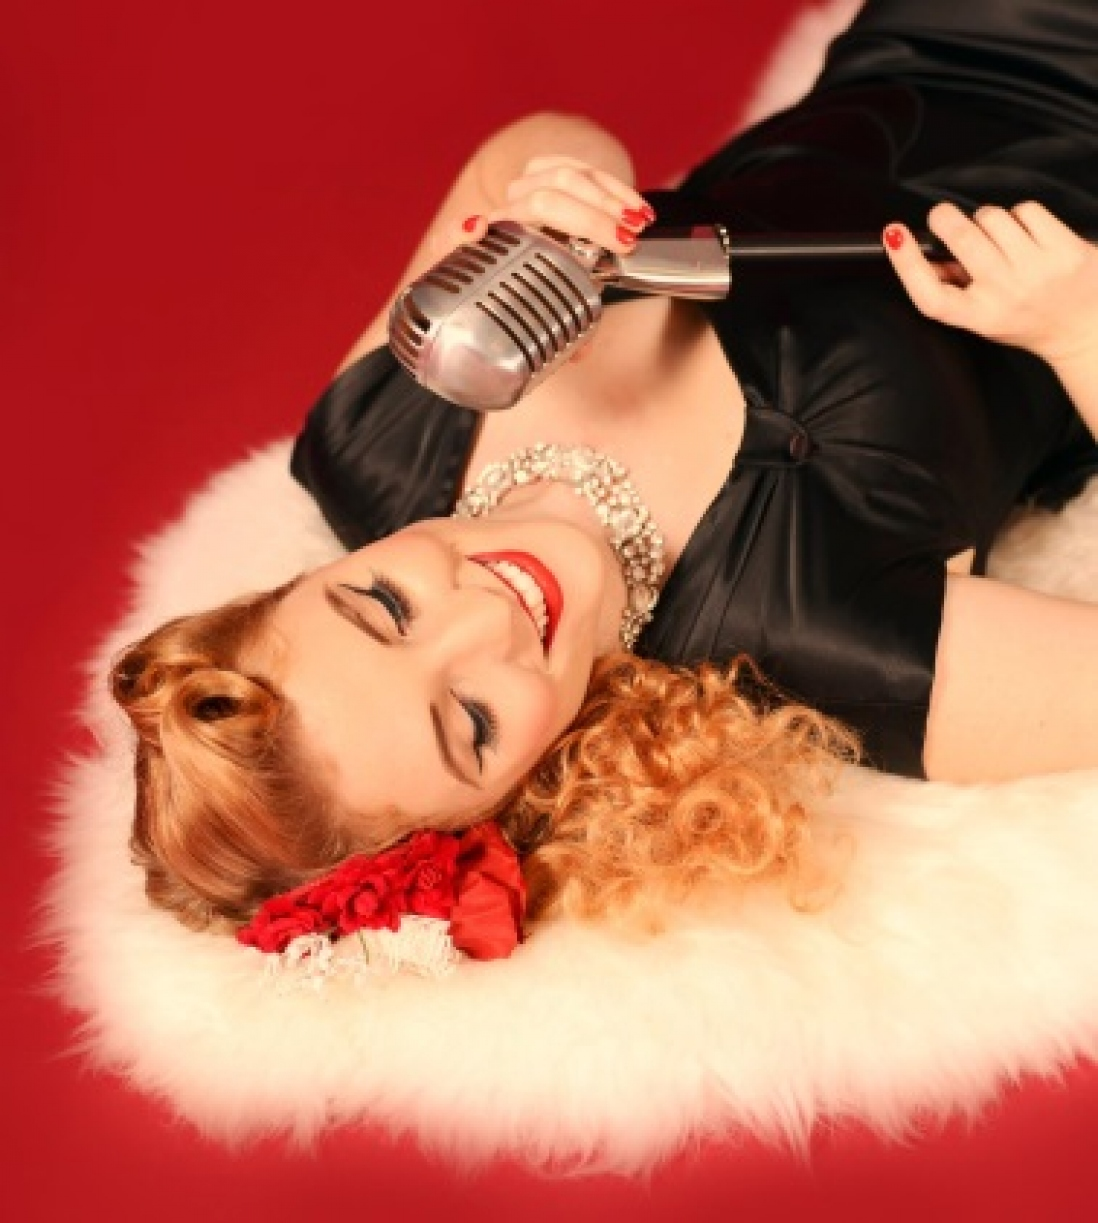 Photo of a woman lying on a rug with an old-fashioned microphone